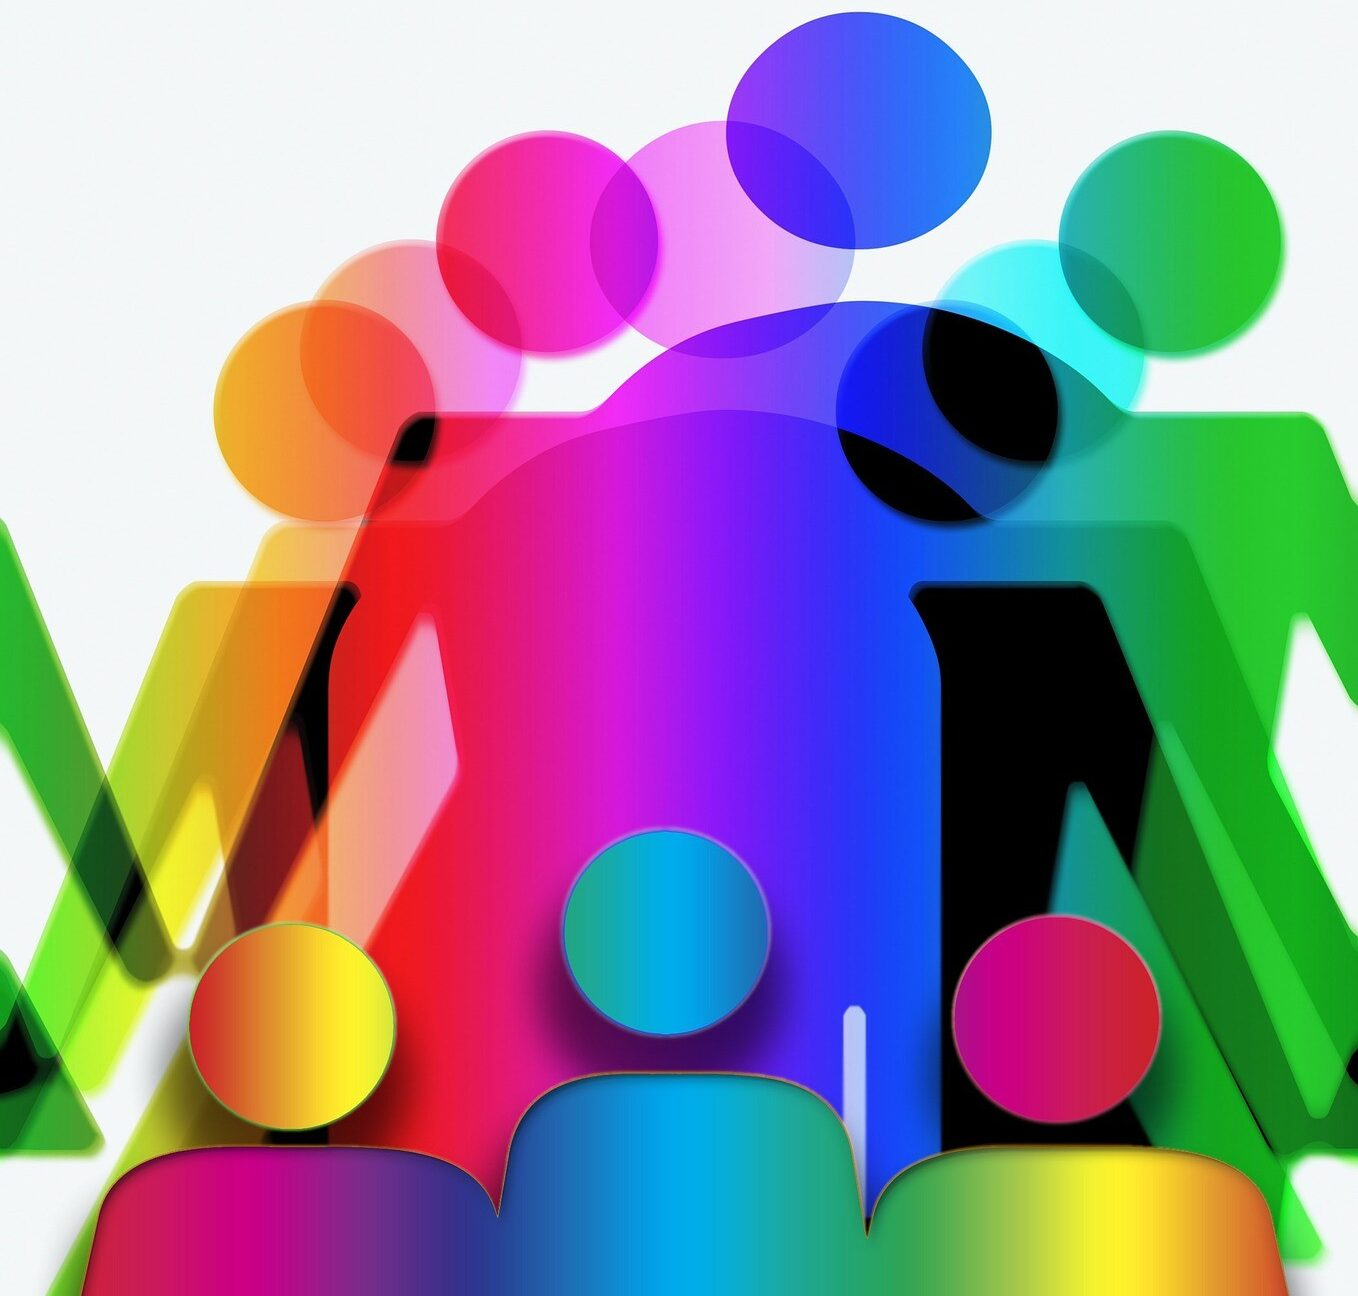 Accessibillity family-76781_1920Image by Gerd Altmann from Pixabay